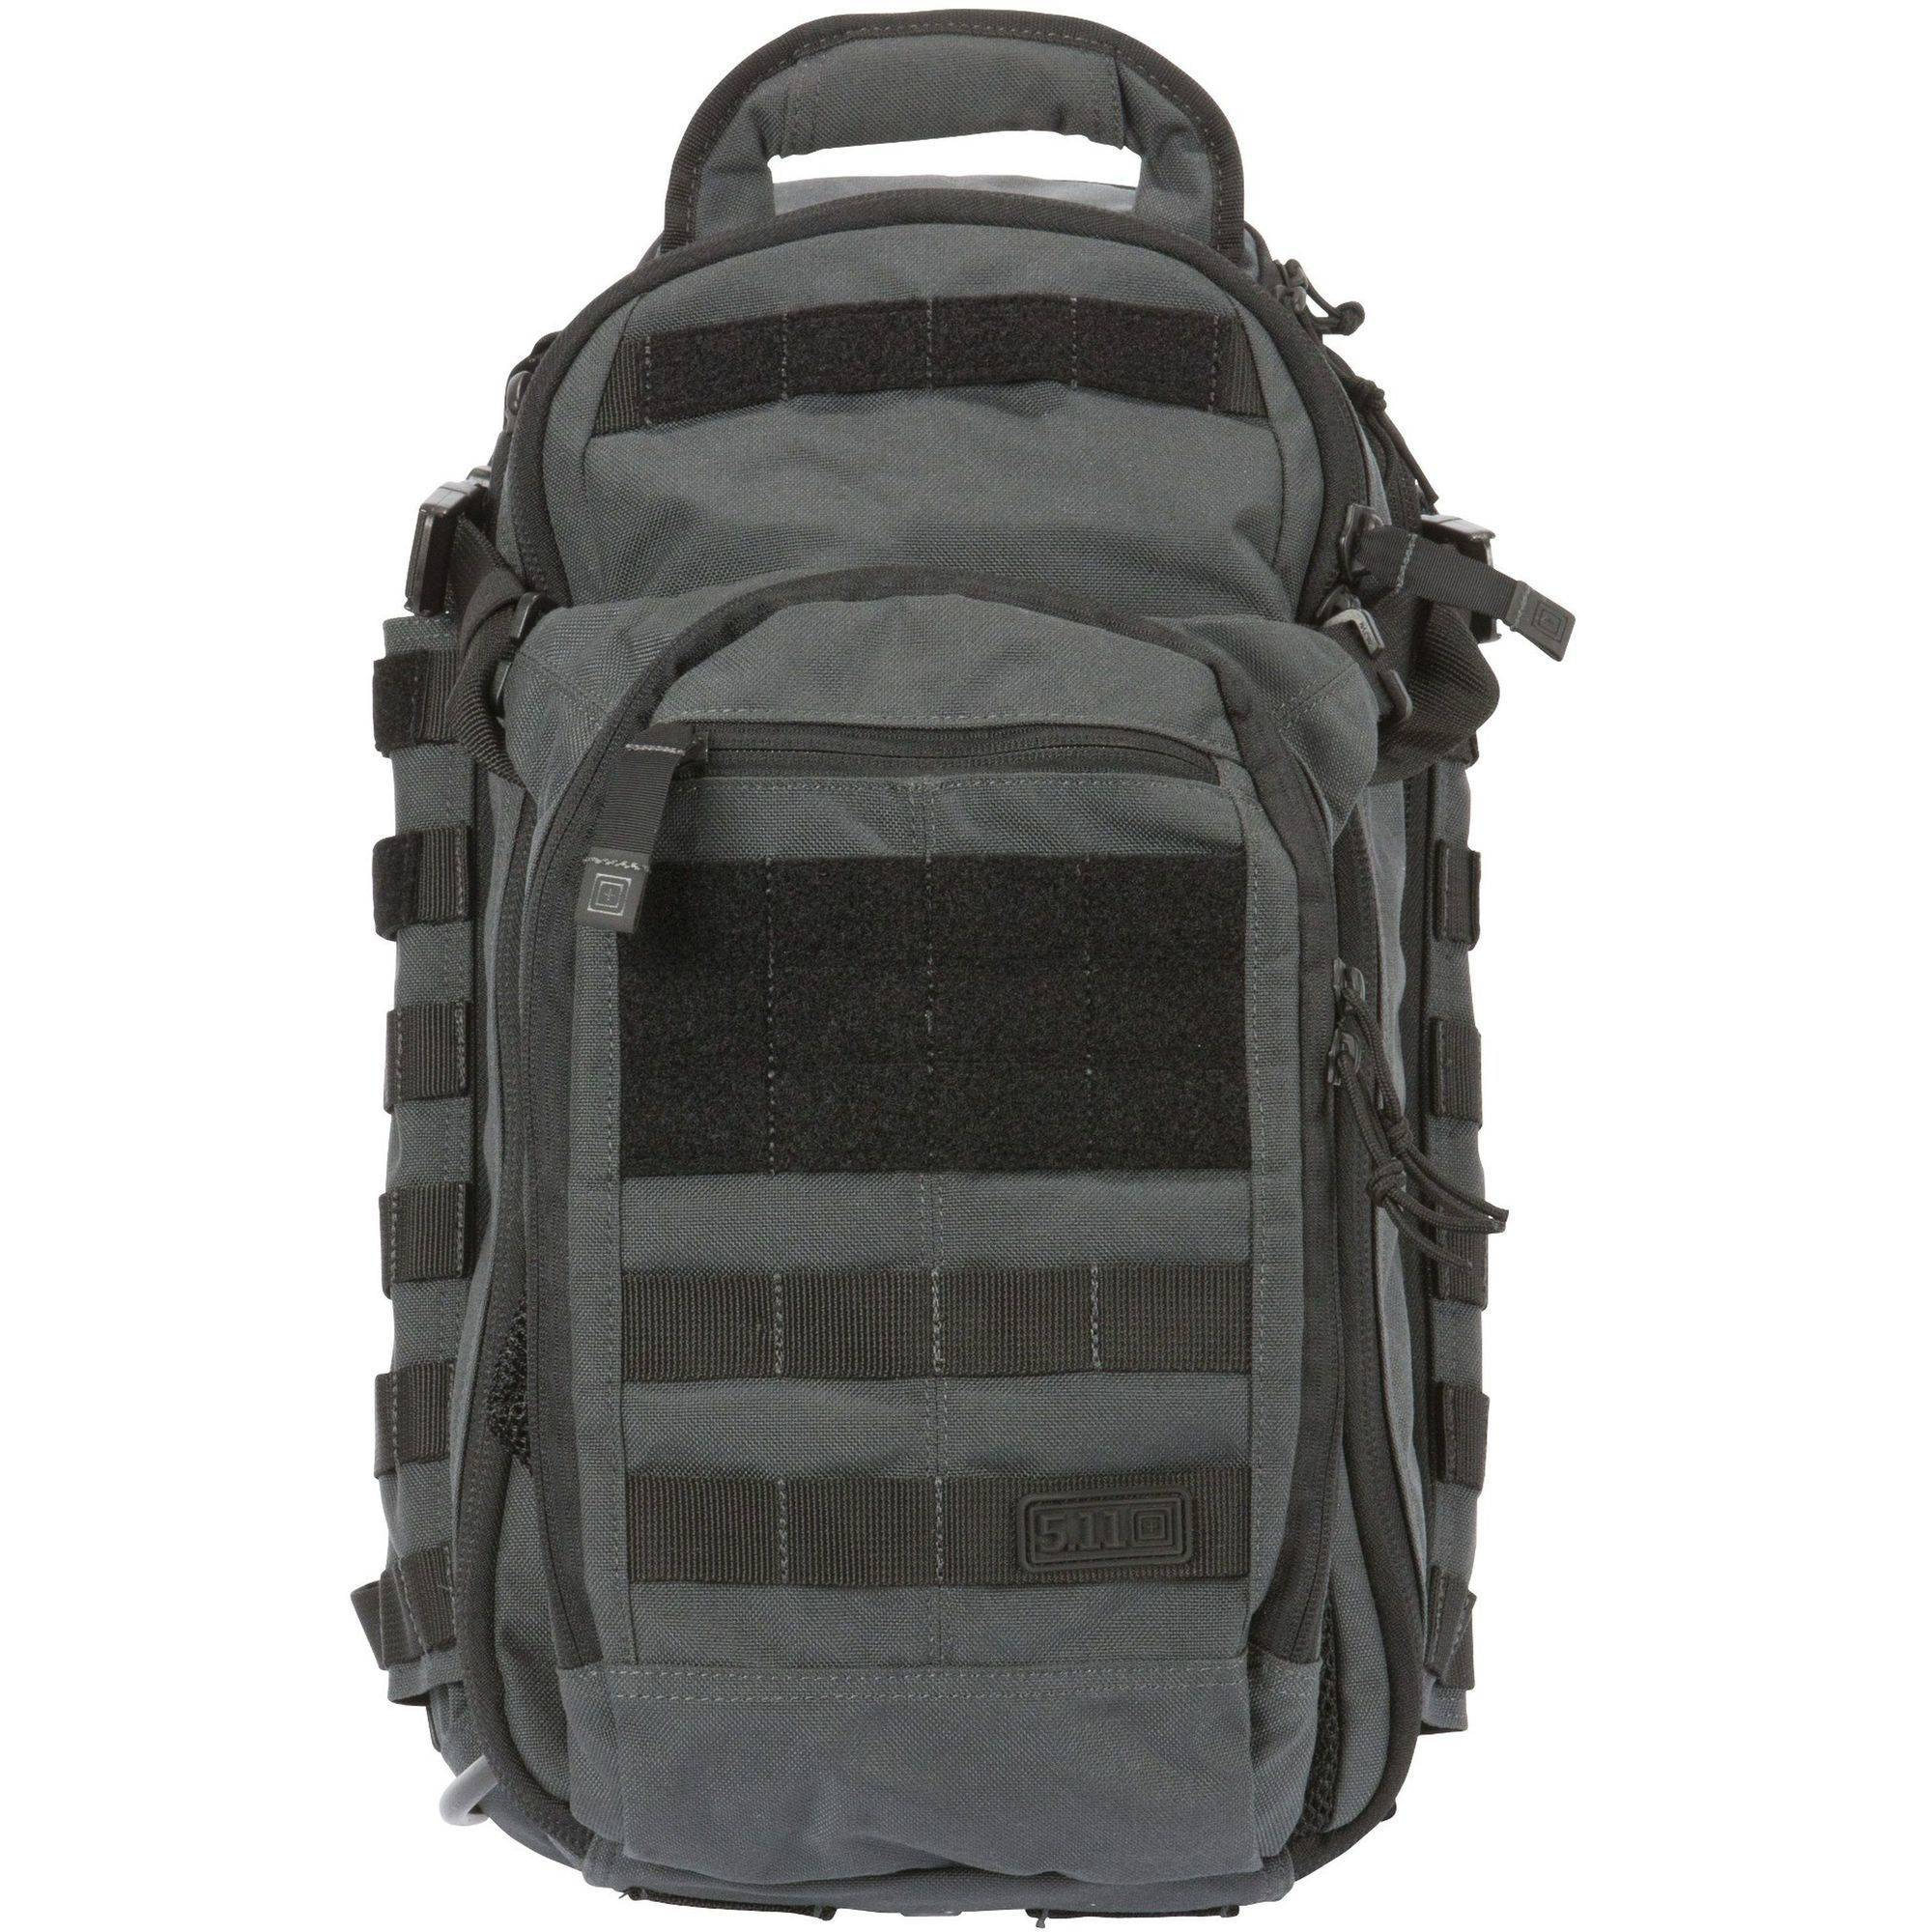 5.11 Tactical 56167 All Hazards Nitro Backpack